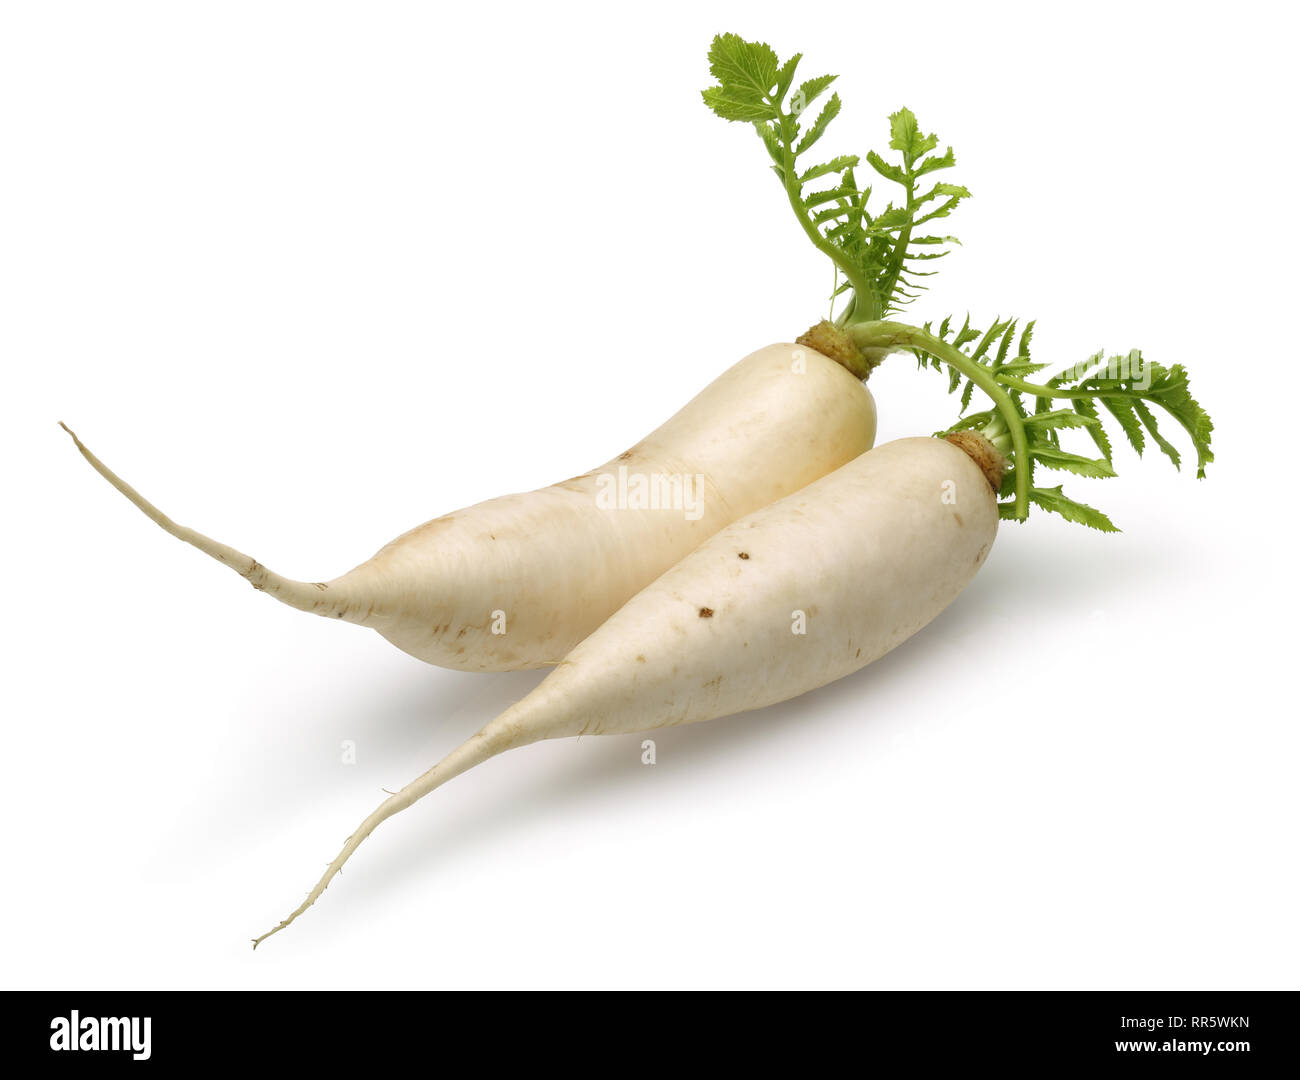 Fresh daikon white radish with leaves isolated on white background Stock Photo